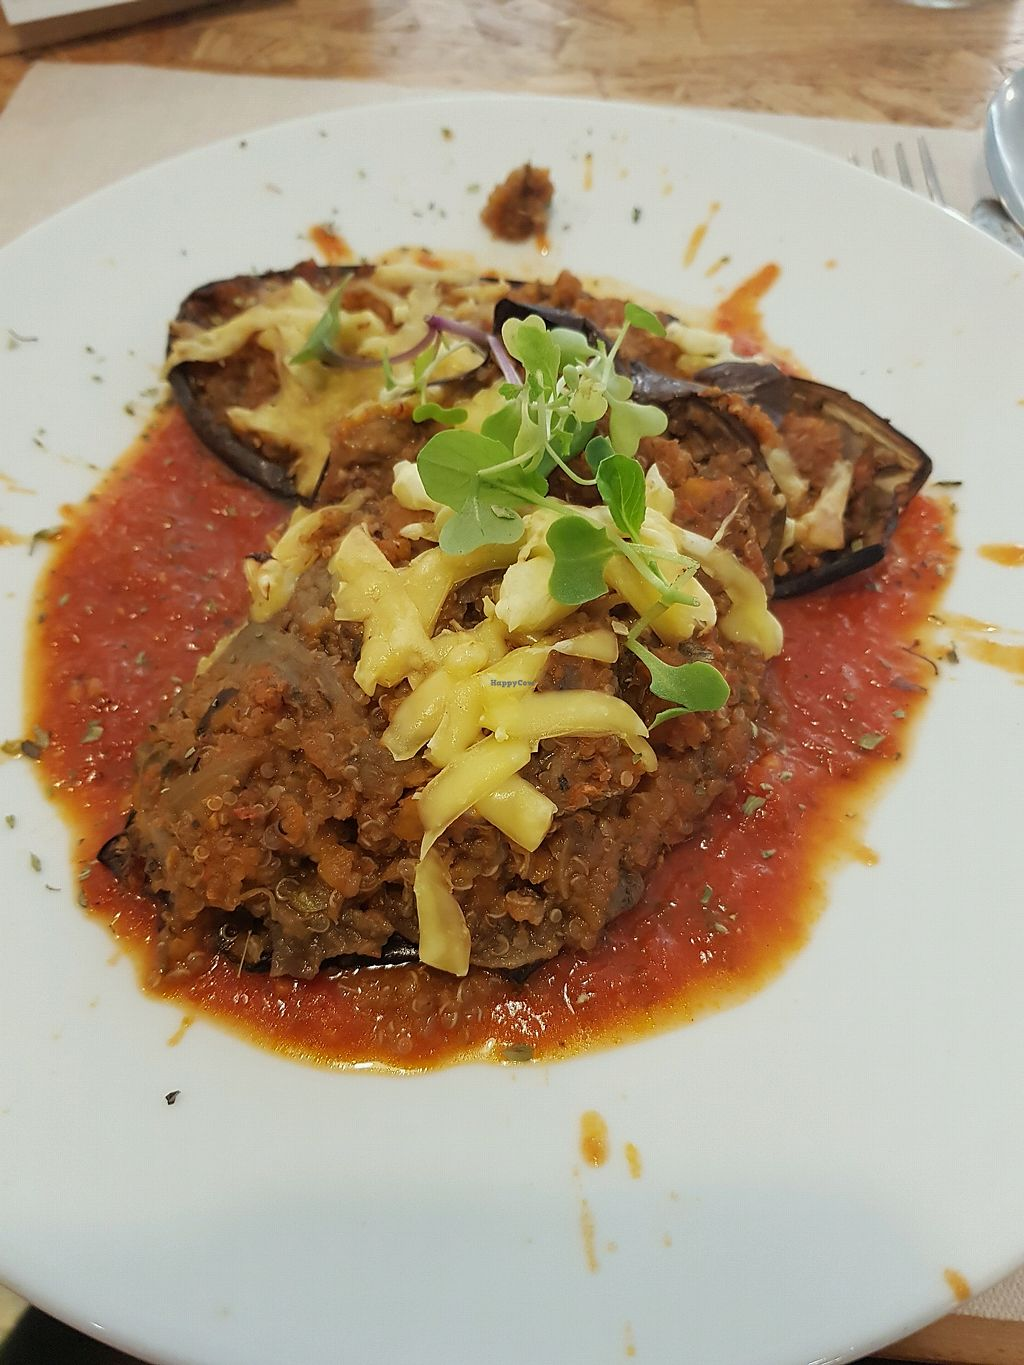 """Photo of El Vergel Veggie Restaurant  by <a href=""""/members/profile/mililili"""">mililili</a> <br/>Stuffed aubergine with quiona bolognese <br/> April 24, 2018  - <a href='/contact/abuse/image/53682/390475'>Report</a>"""